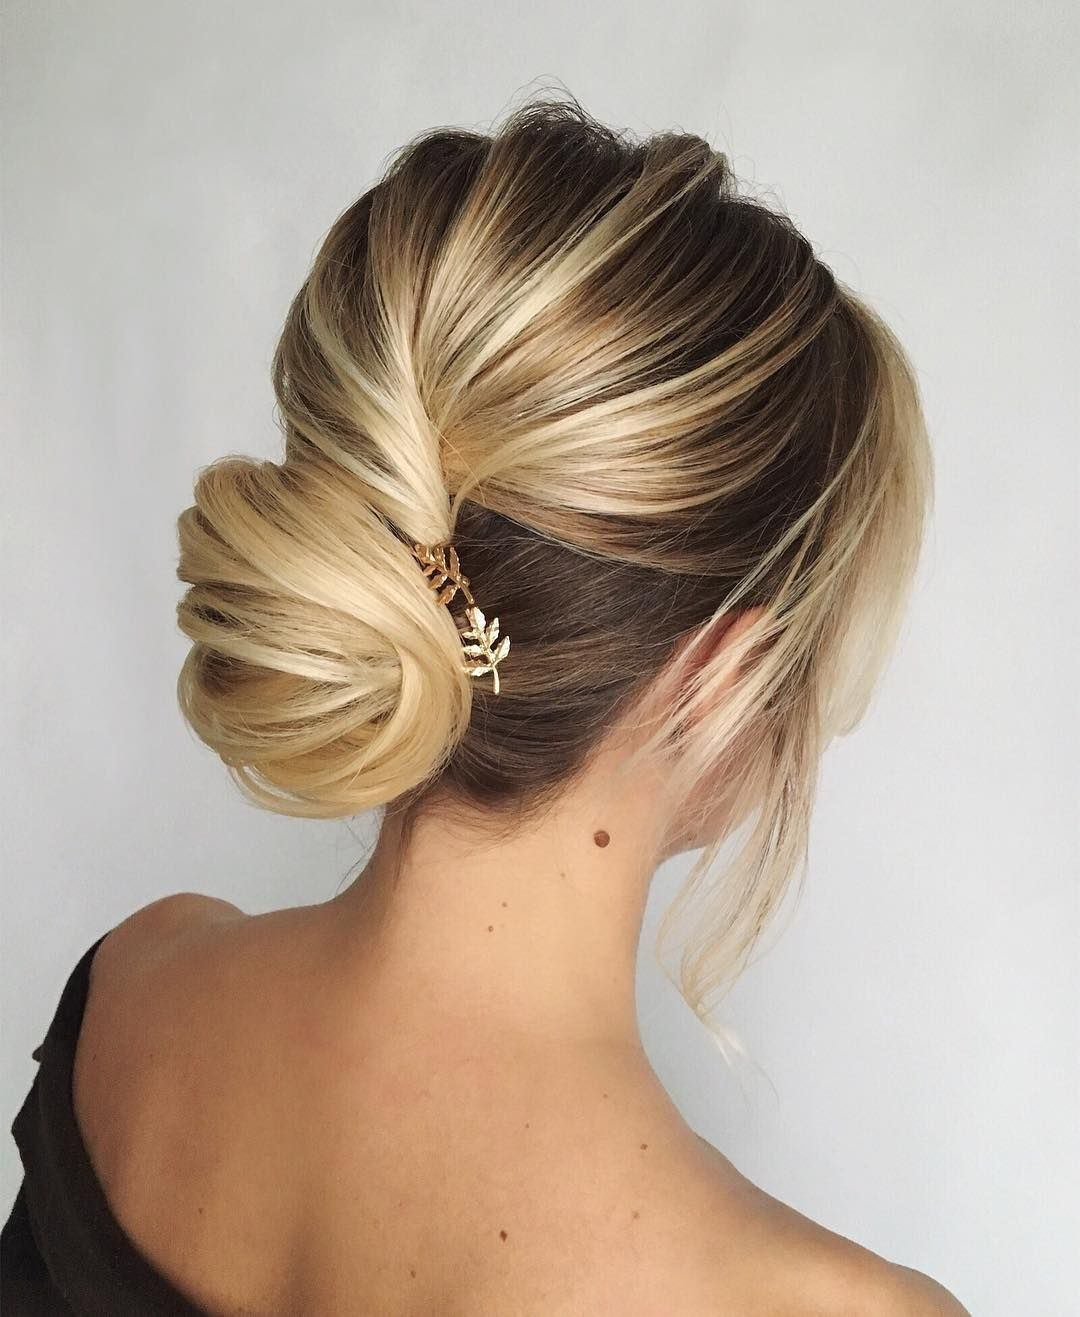 Twisted wedding updo hairstyle pretty updo wedding hairstyles